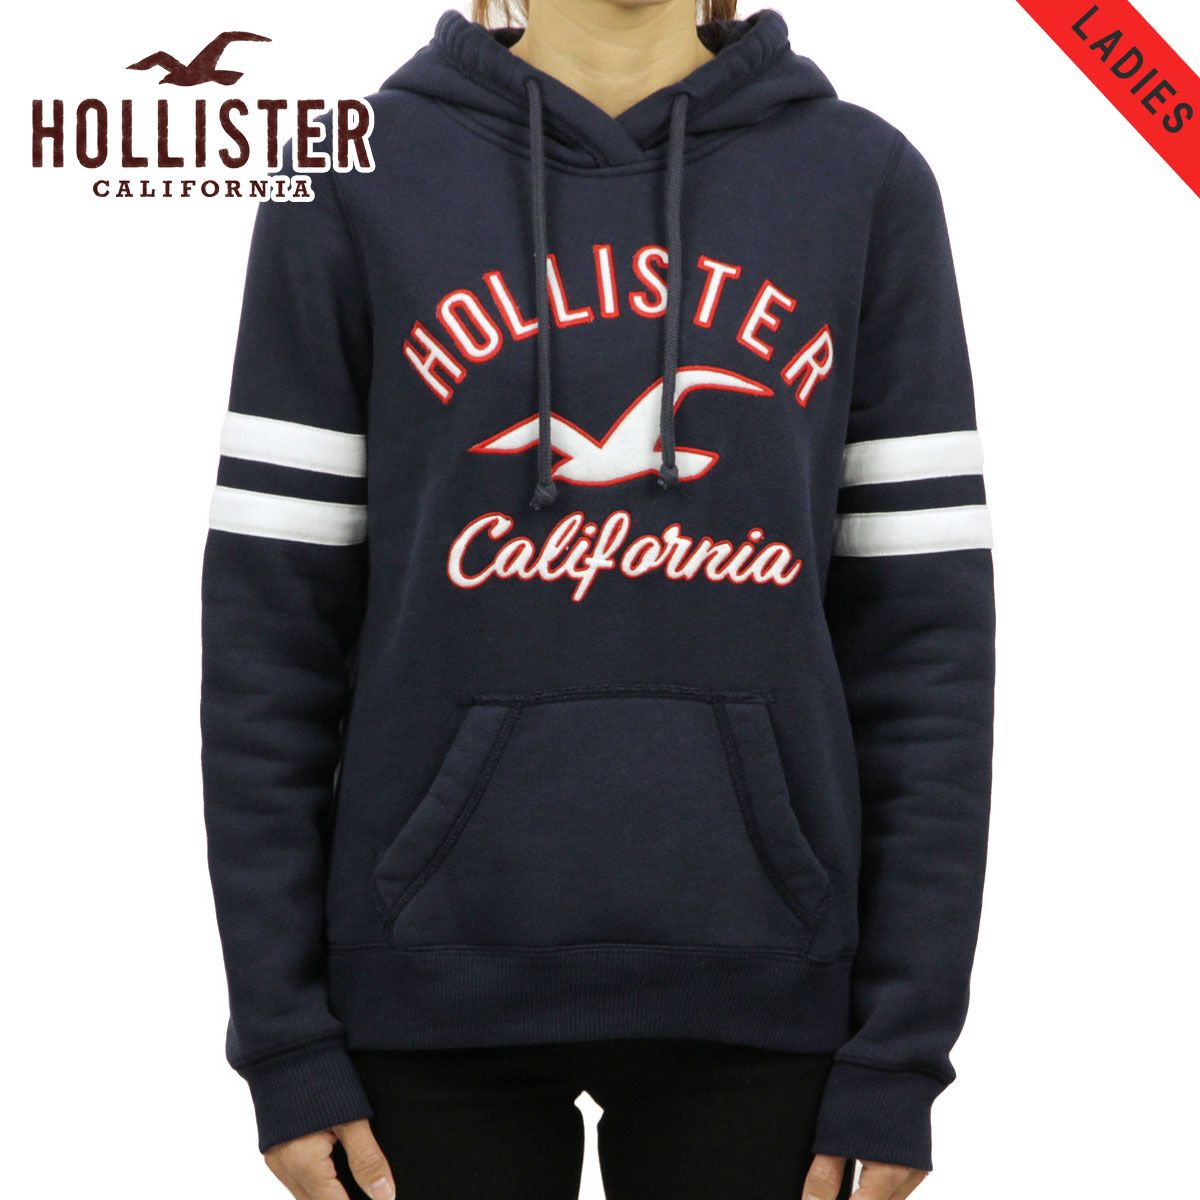 Hollister chat online